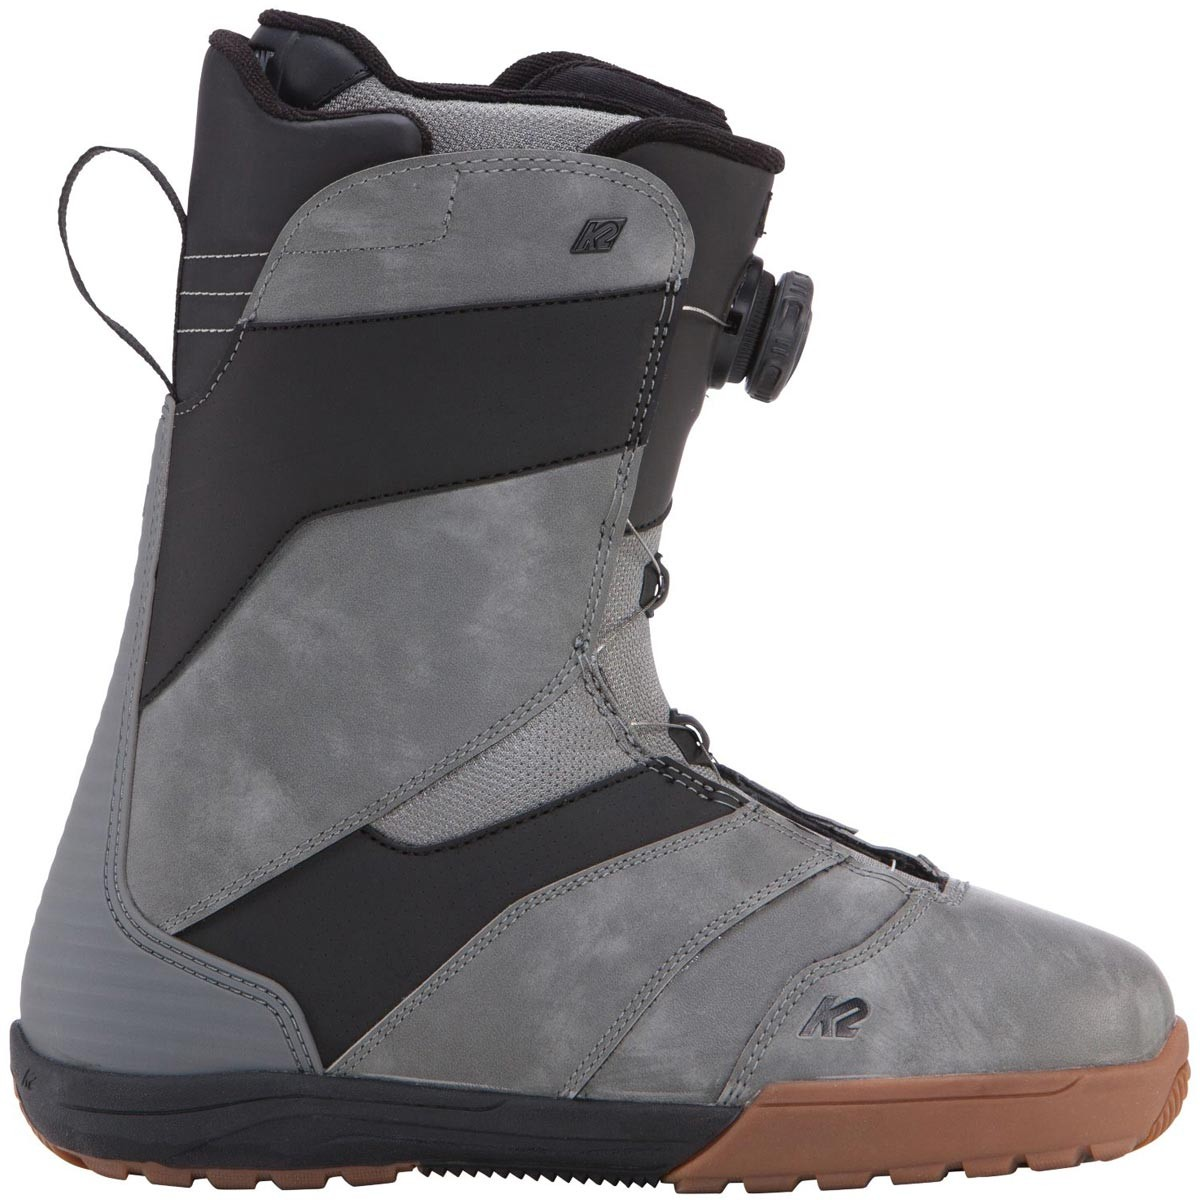 MountainHybridBoaVibram K2 All Sole Raider Boots Snowboard tQxBsCdhr